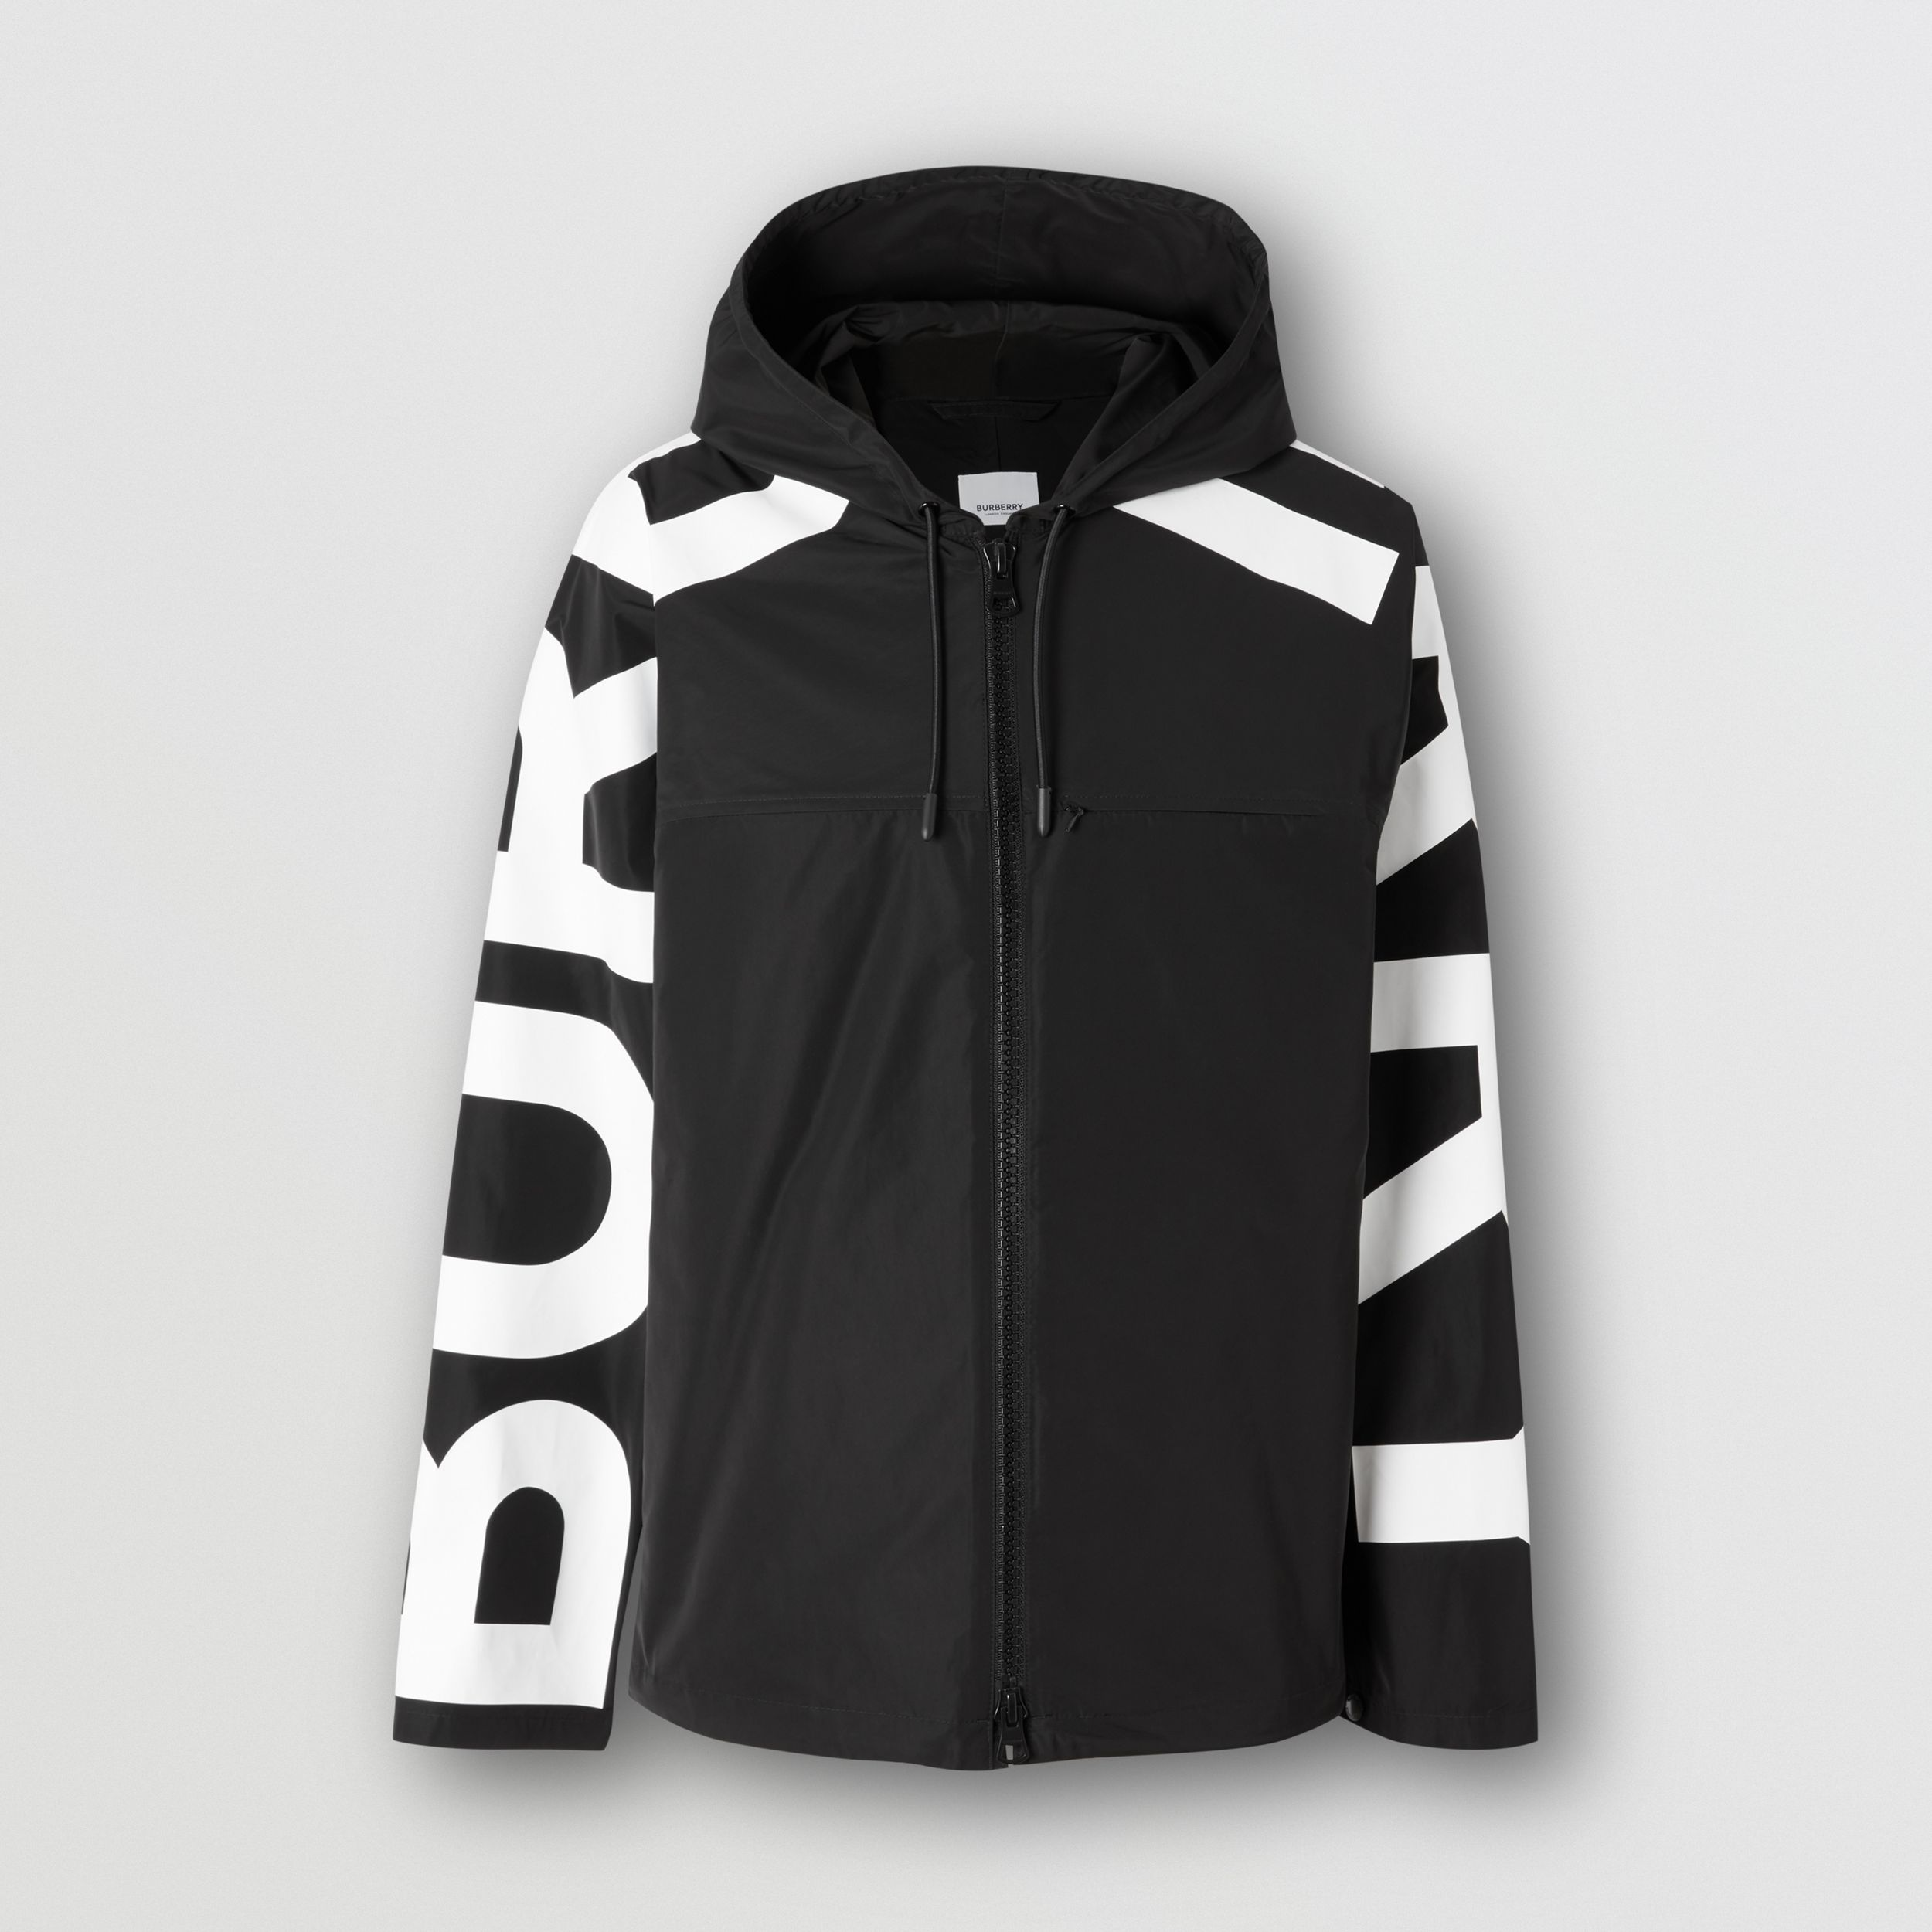 Logo Print Shape-memory Taffeta Hooded Jacket in Black | Burberry - 4